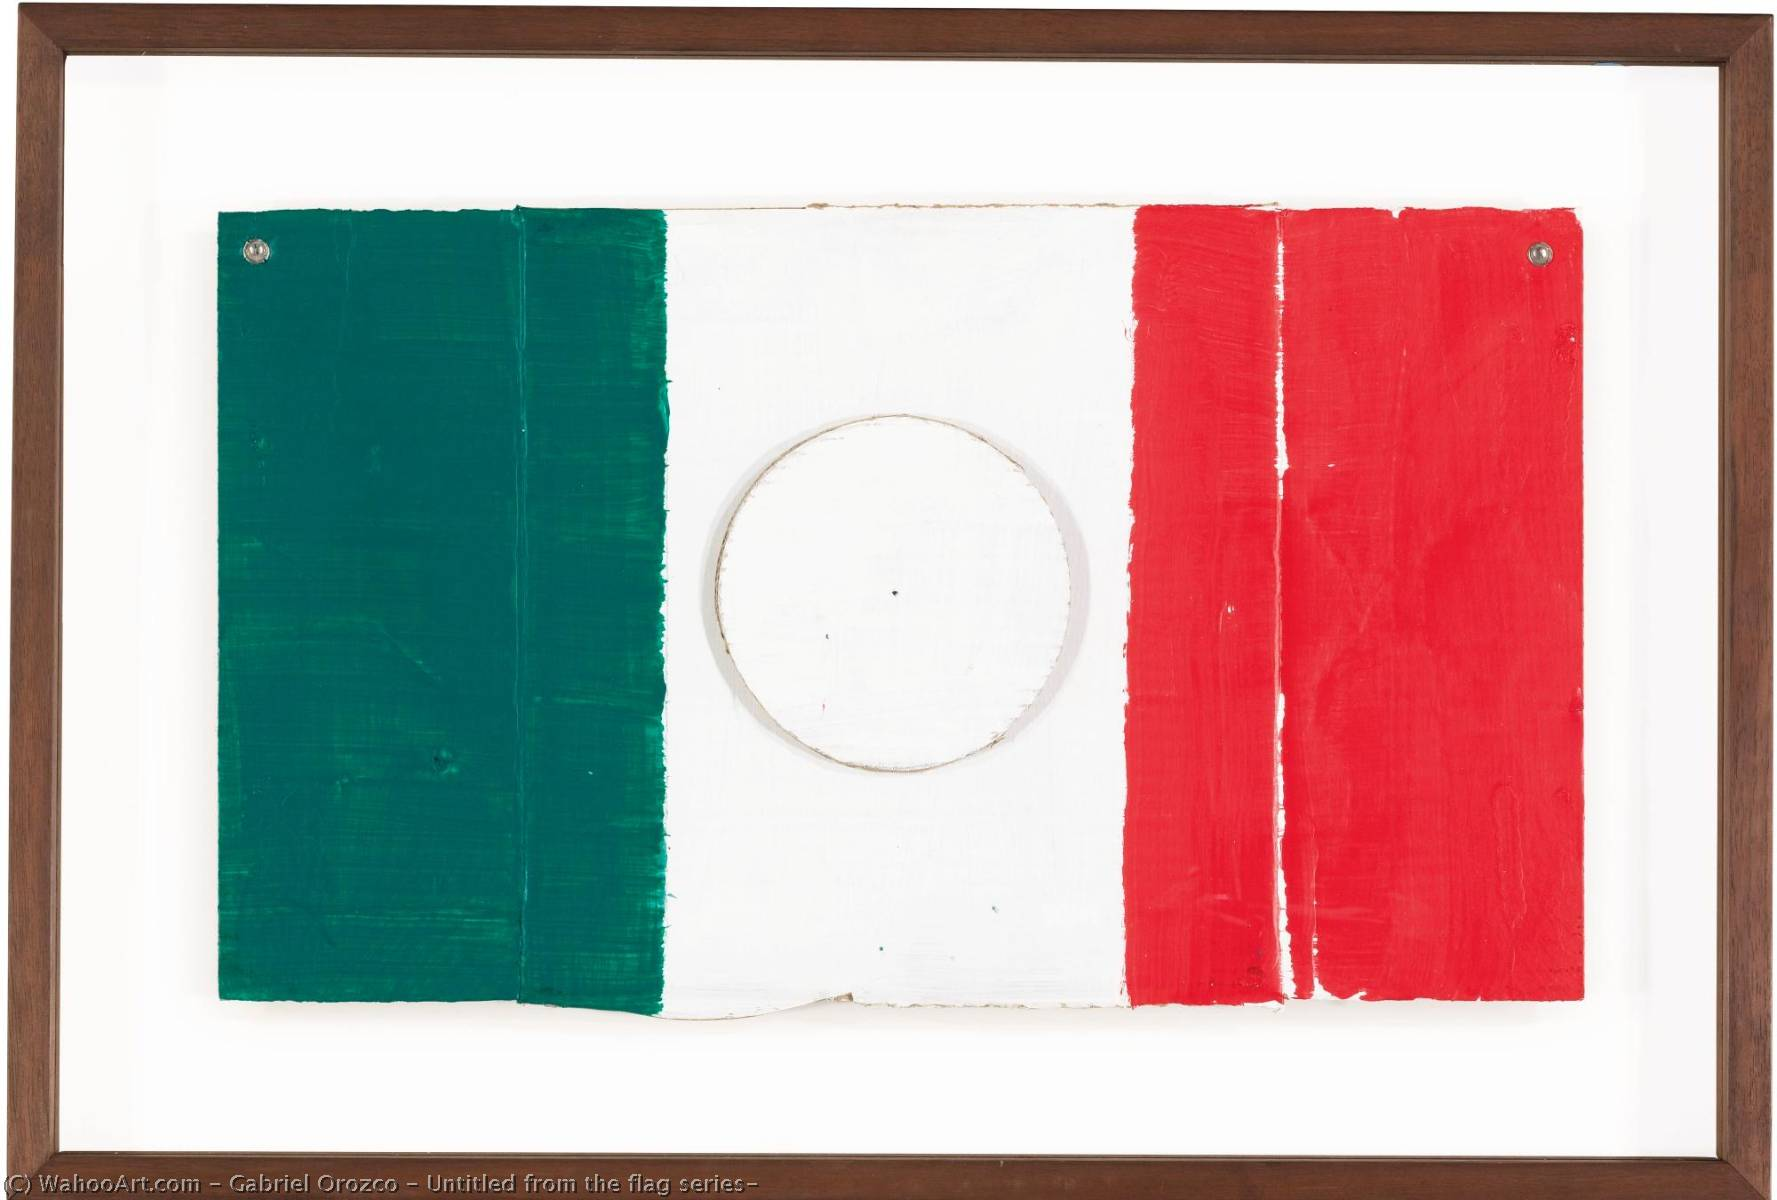 Untitled from the flag series` by Gabriel Orozco |  | WahooArt.com